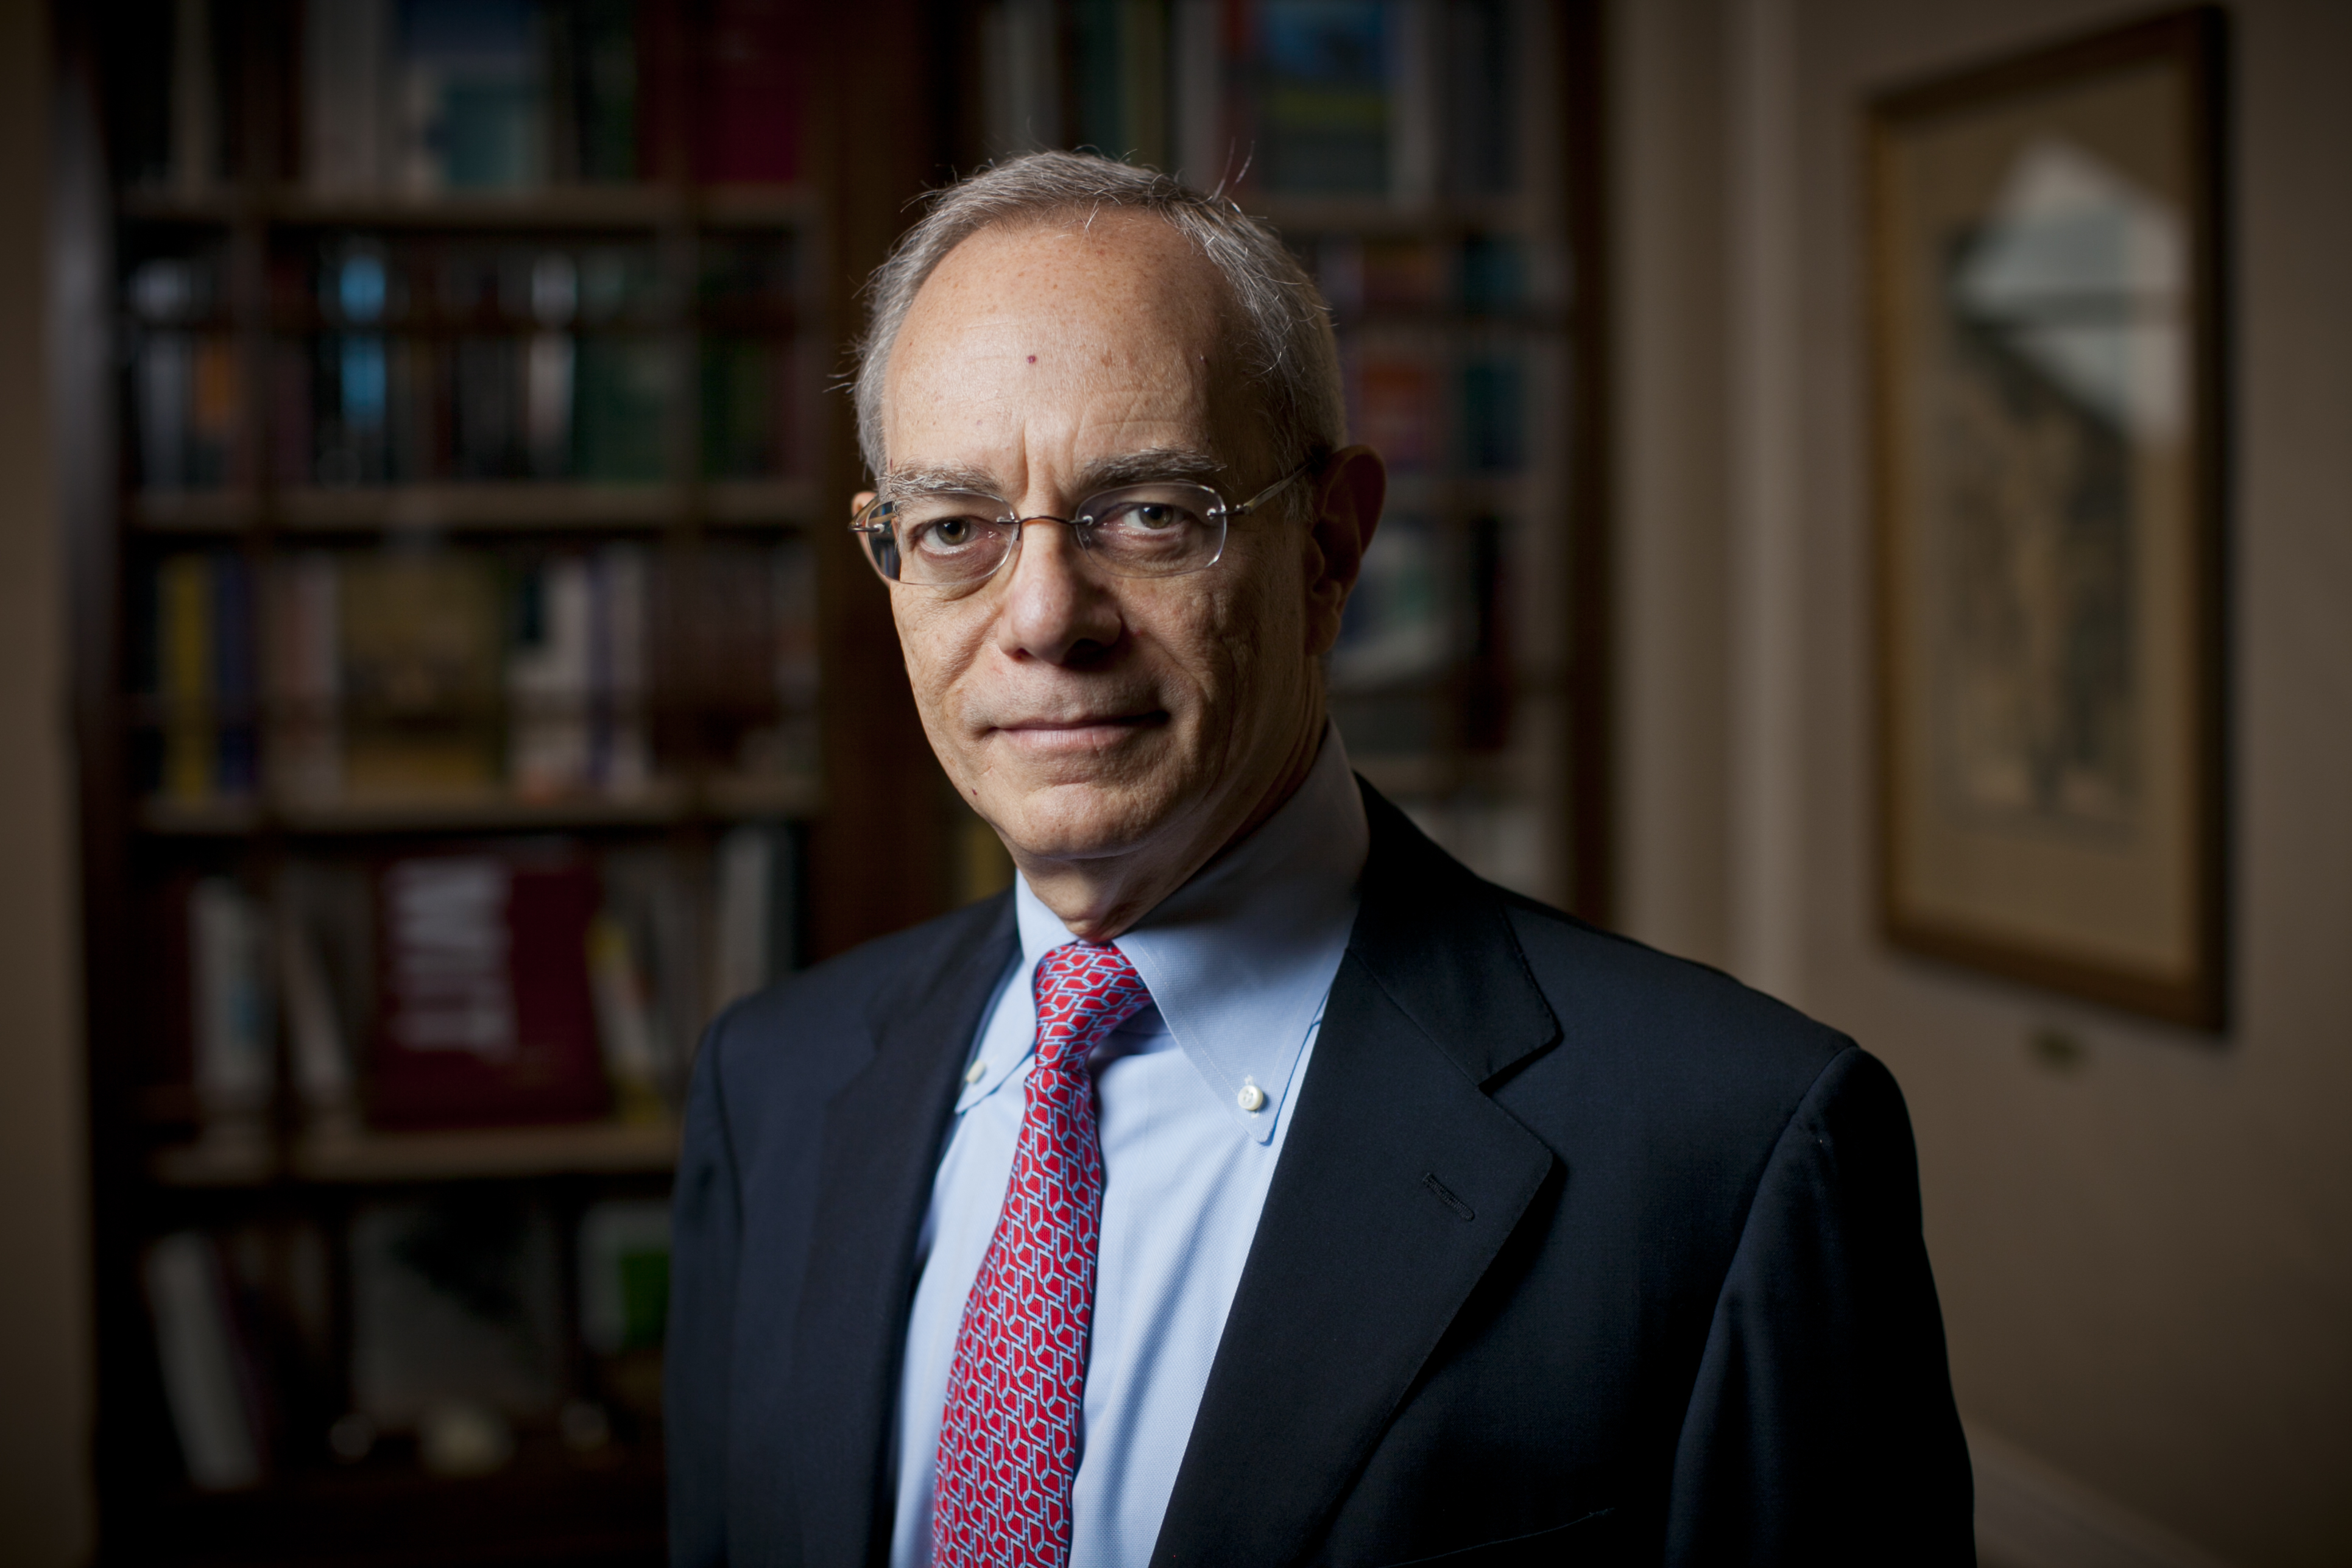 Alcoa has elected L. Rafael Reif to its board of directors, effective March 2, 2015. Dr. Reif is president of MIT. (Photo: Business Wire)